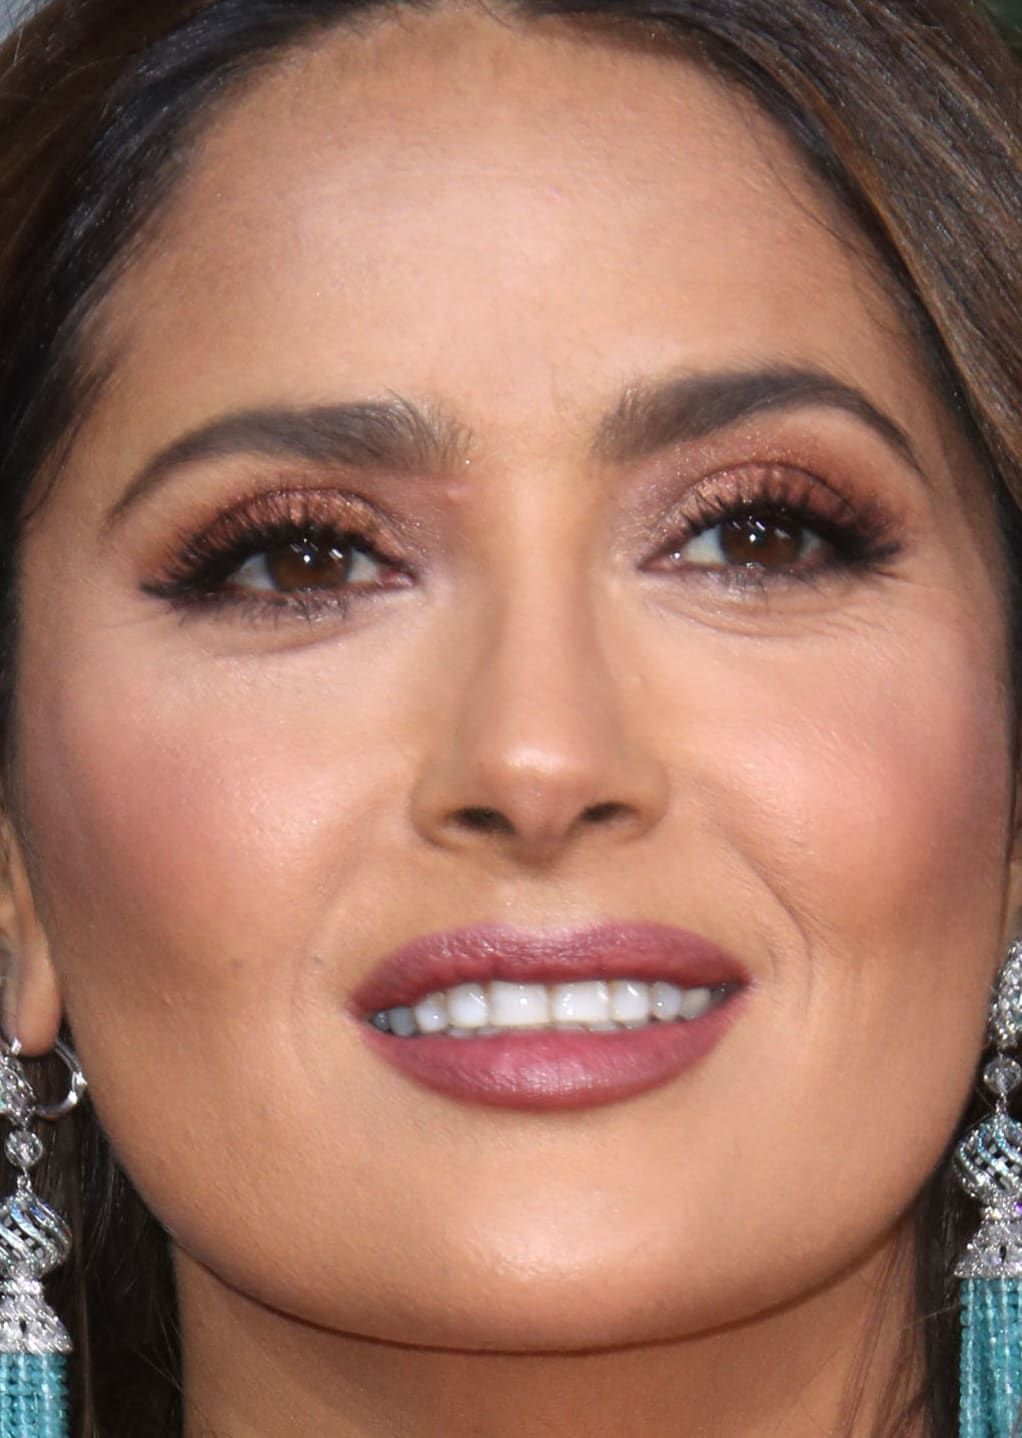 Golden Globes 2020 The Best Skin, Hair and Makeup Looks